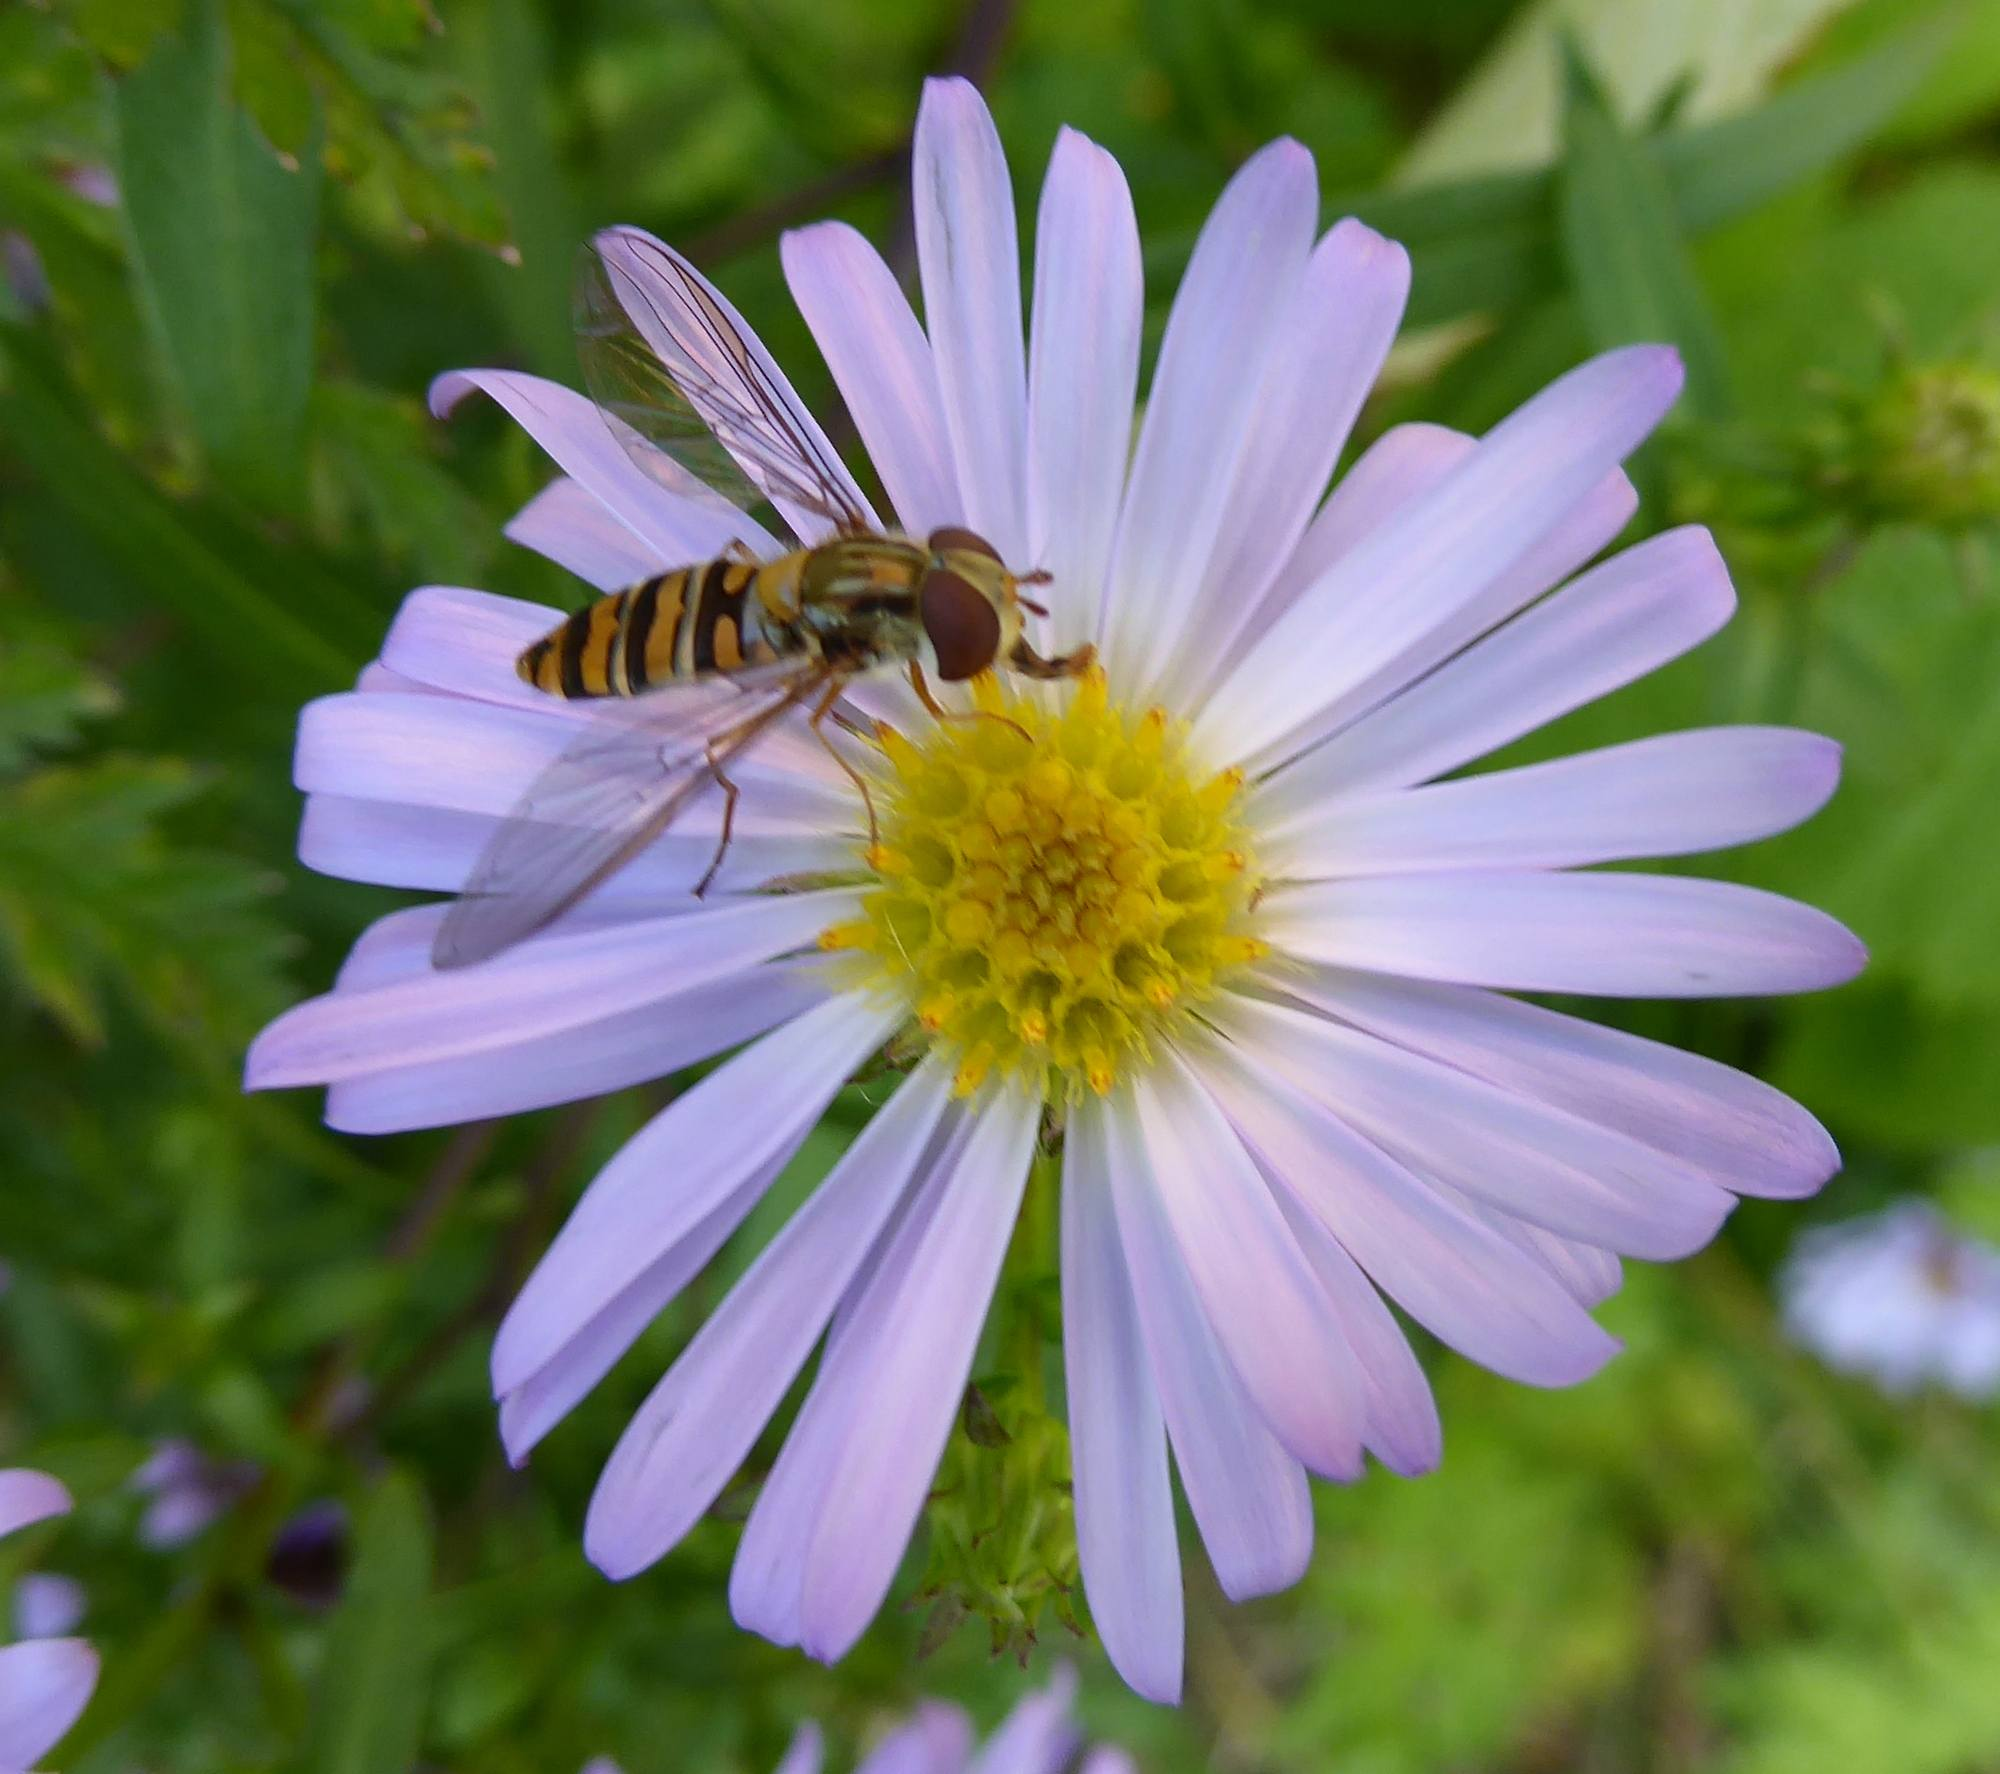 Pollinator on michaelmas daisy